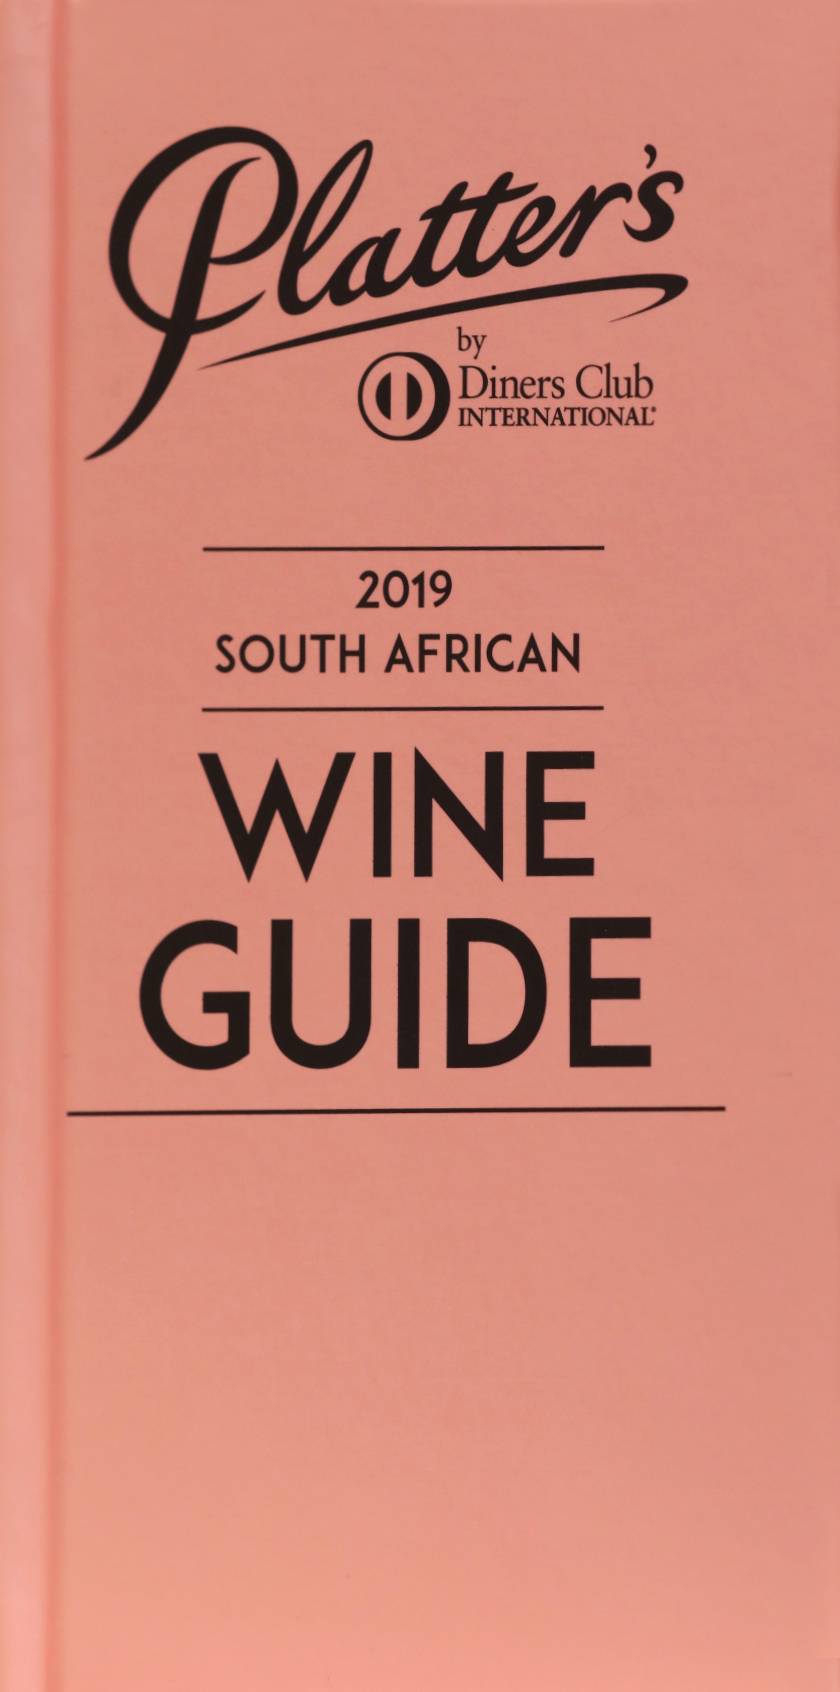 Platter's South African Wine Guide 2019